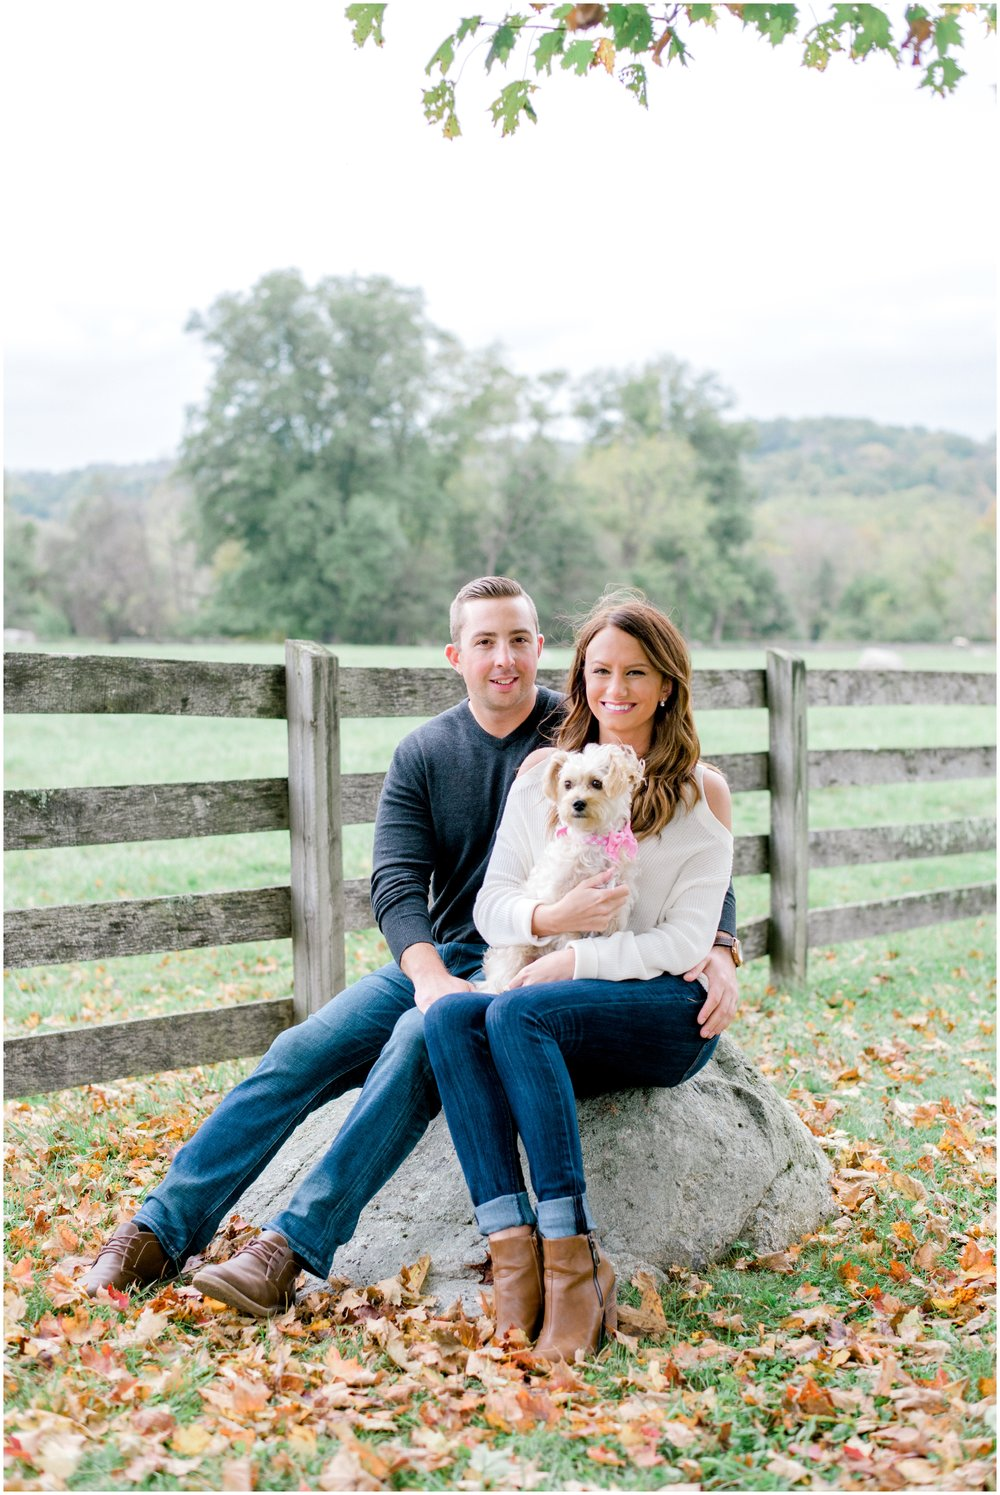 Fall Springton Manor Farm Engagement Session - Krista Brackin Photography_0021.jpg